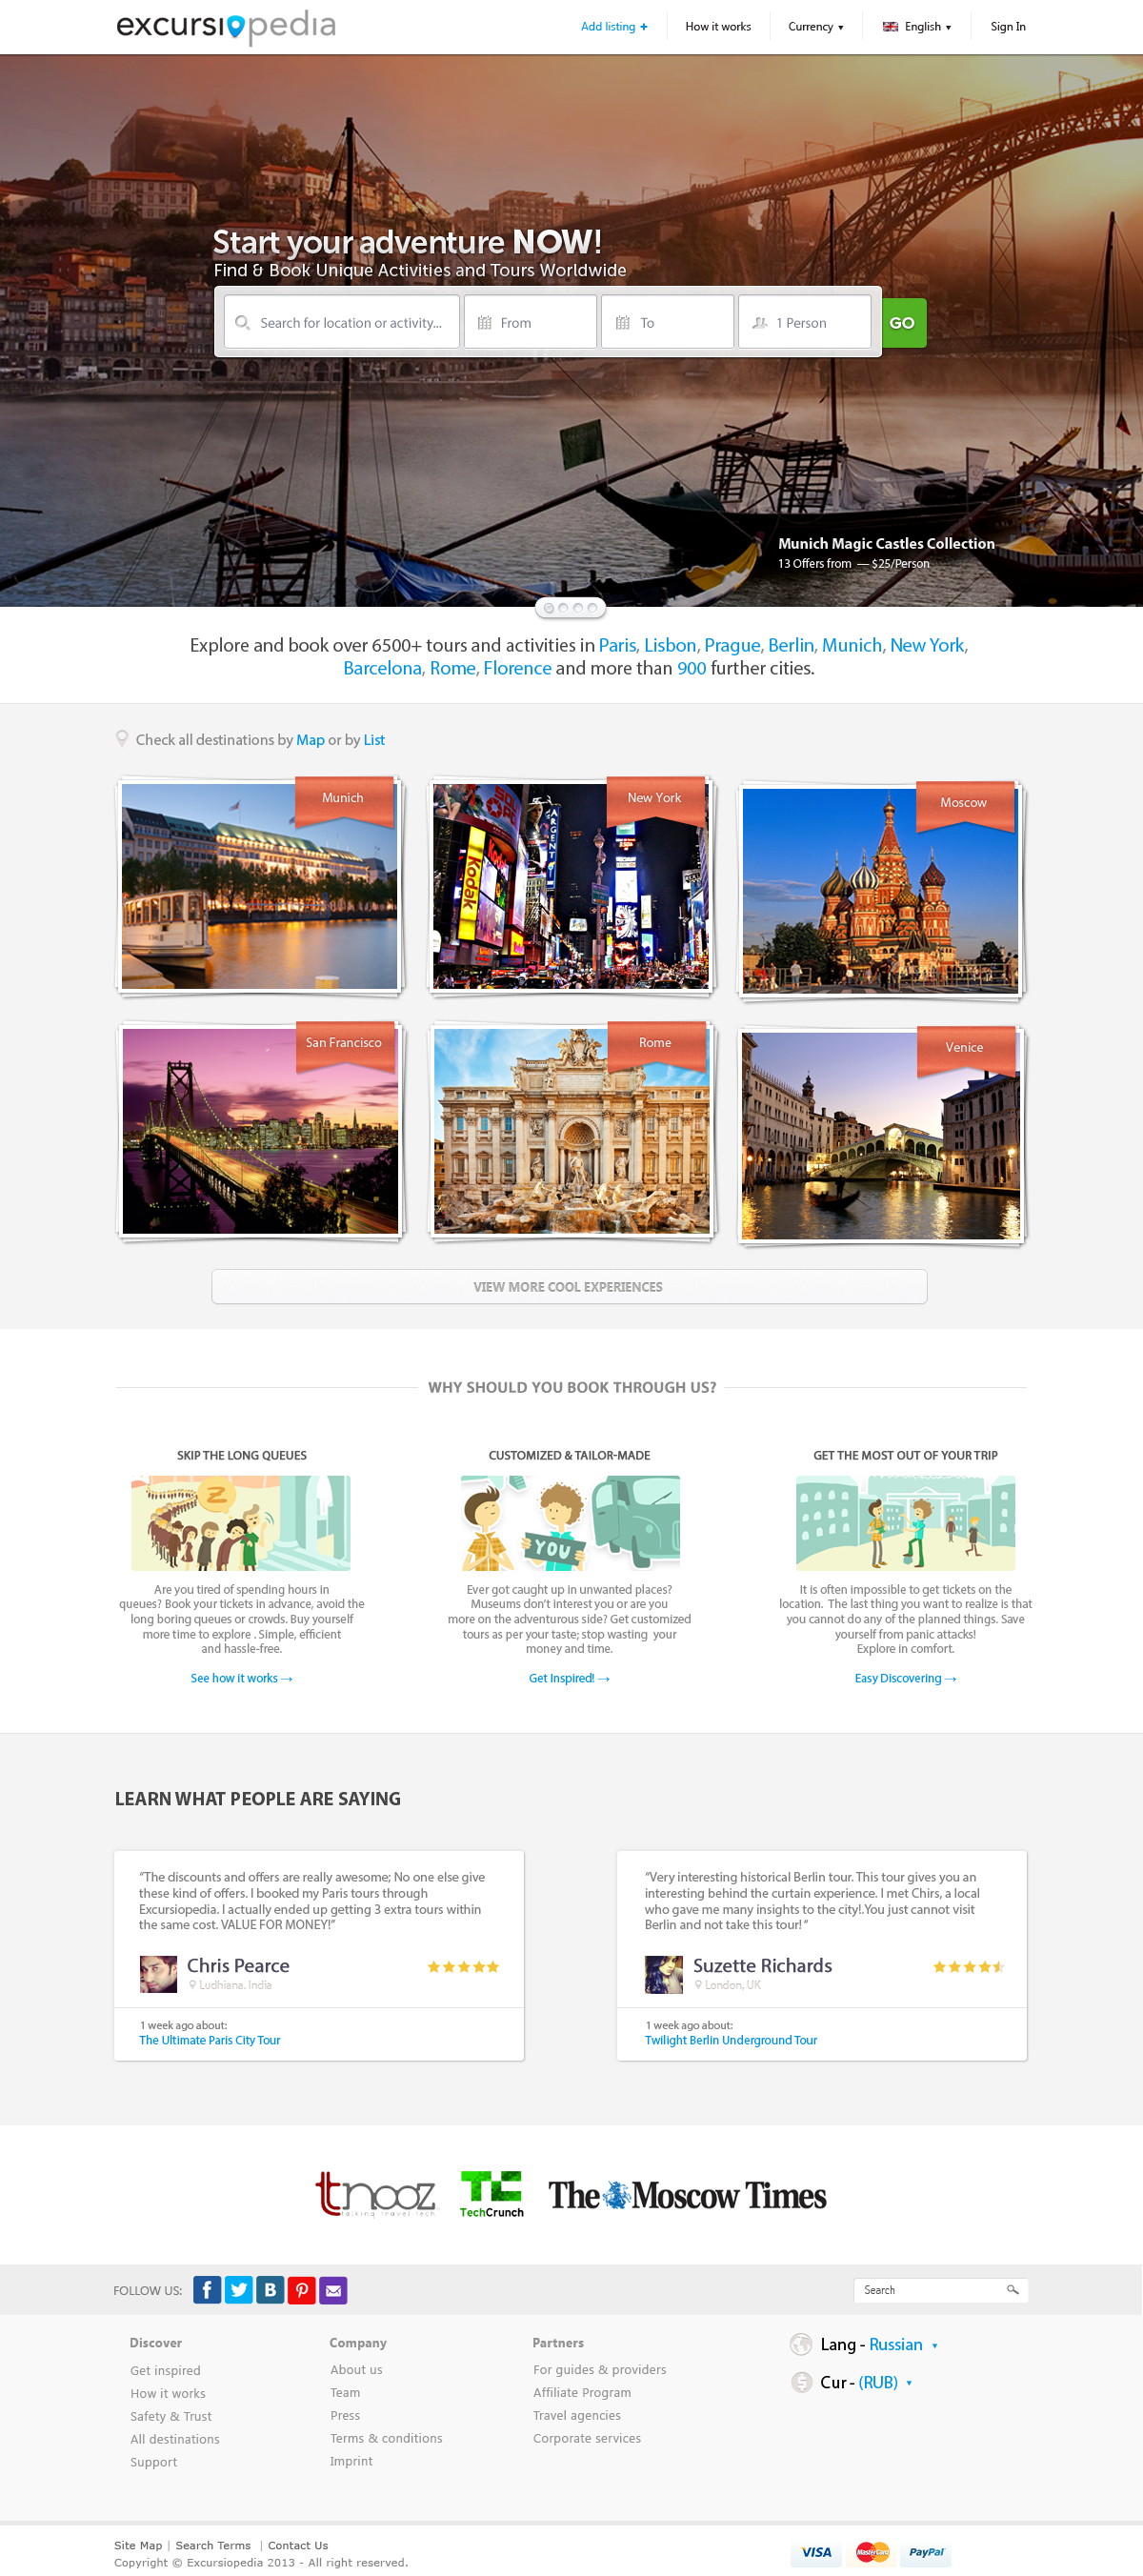 Excursiopedia Landing Page Re-Design - image 9 - student project